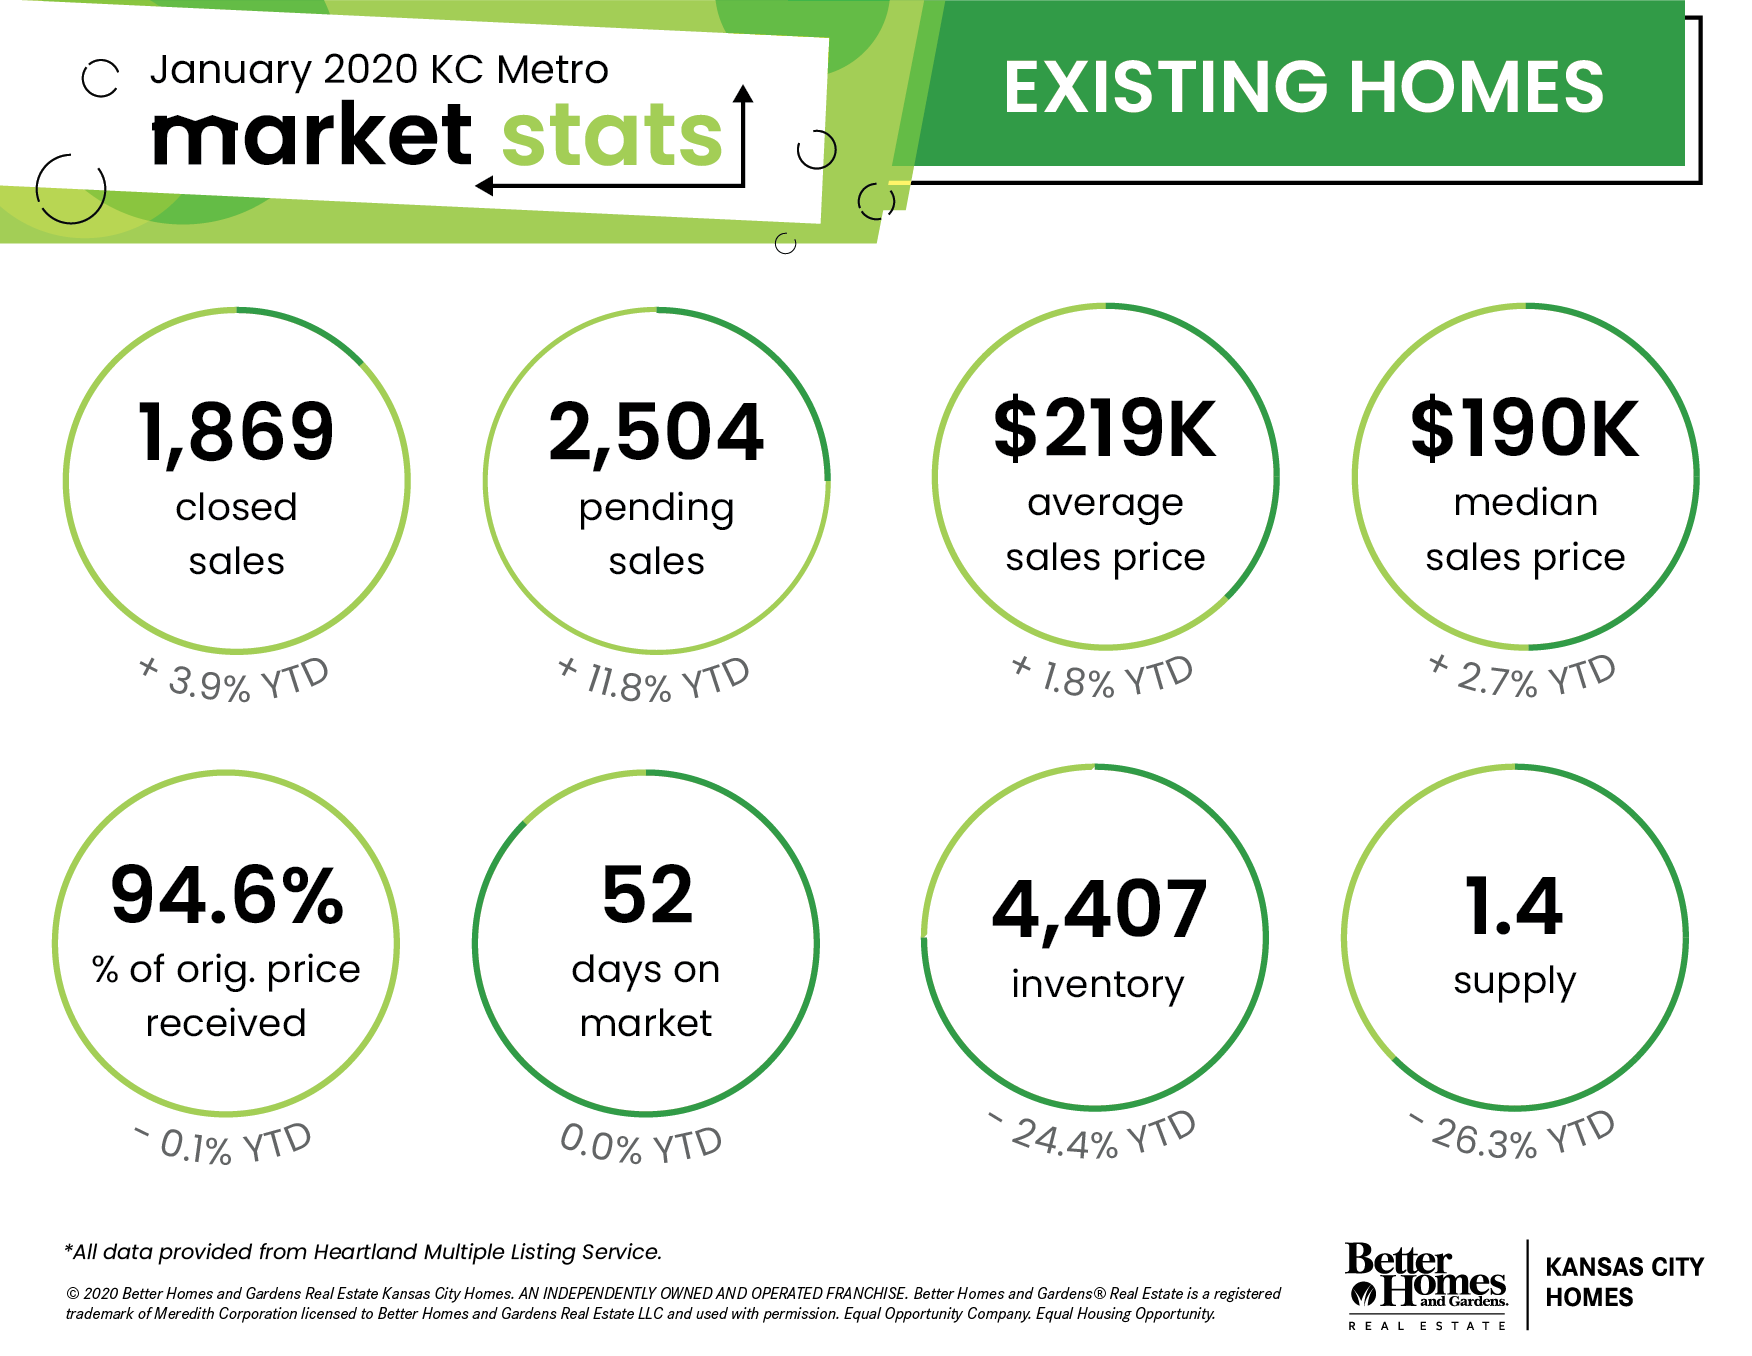 Kansas City Metro Area Real Estate Stats - January 2020 | Existing Homes